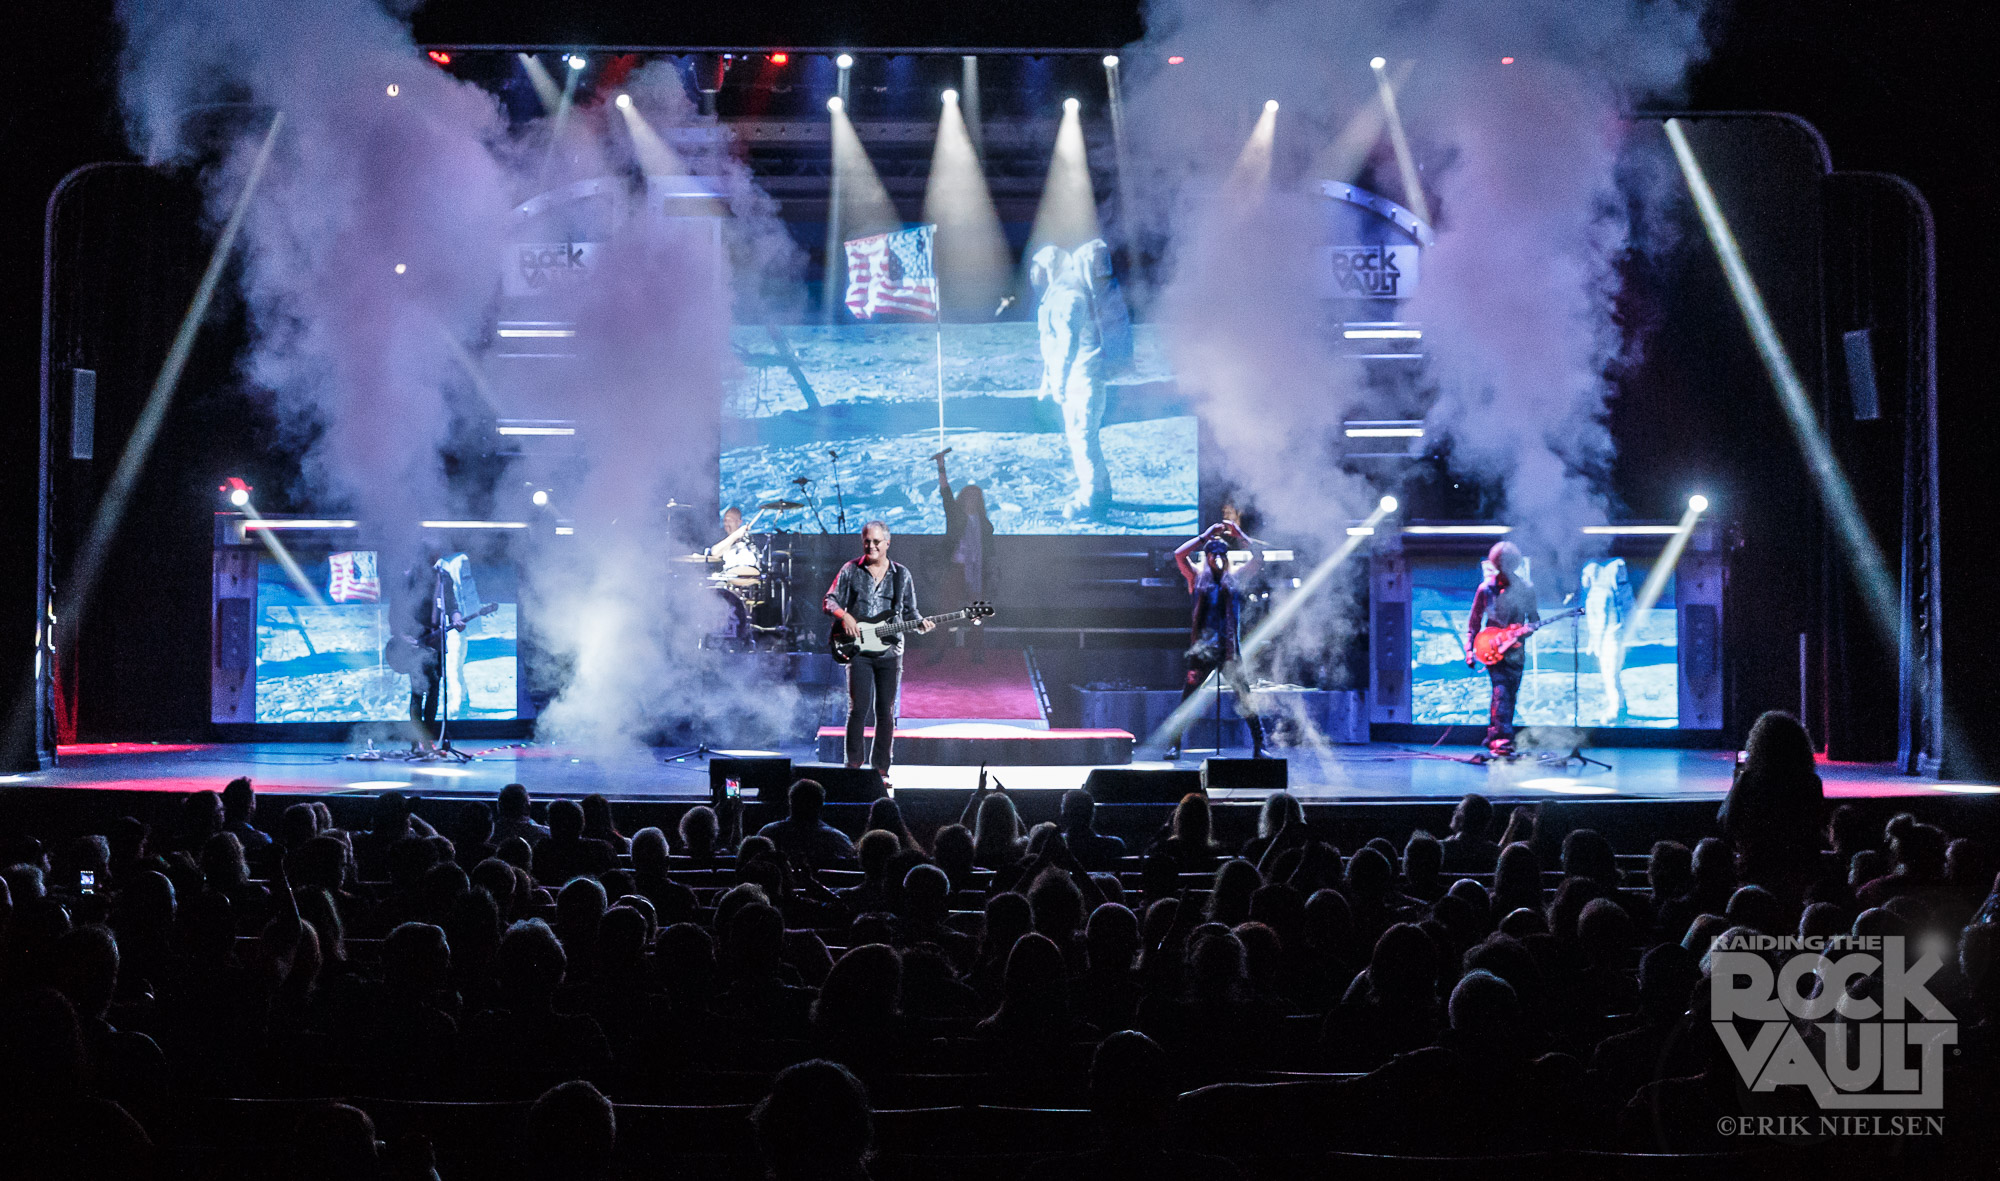 Raiding The Rock Vault Debuts in Branson, MO at The Starlite Theatre